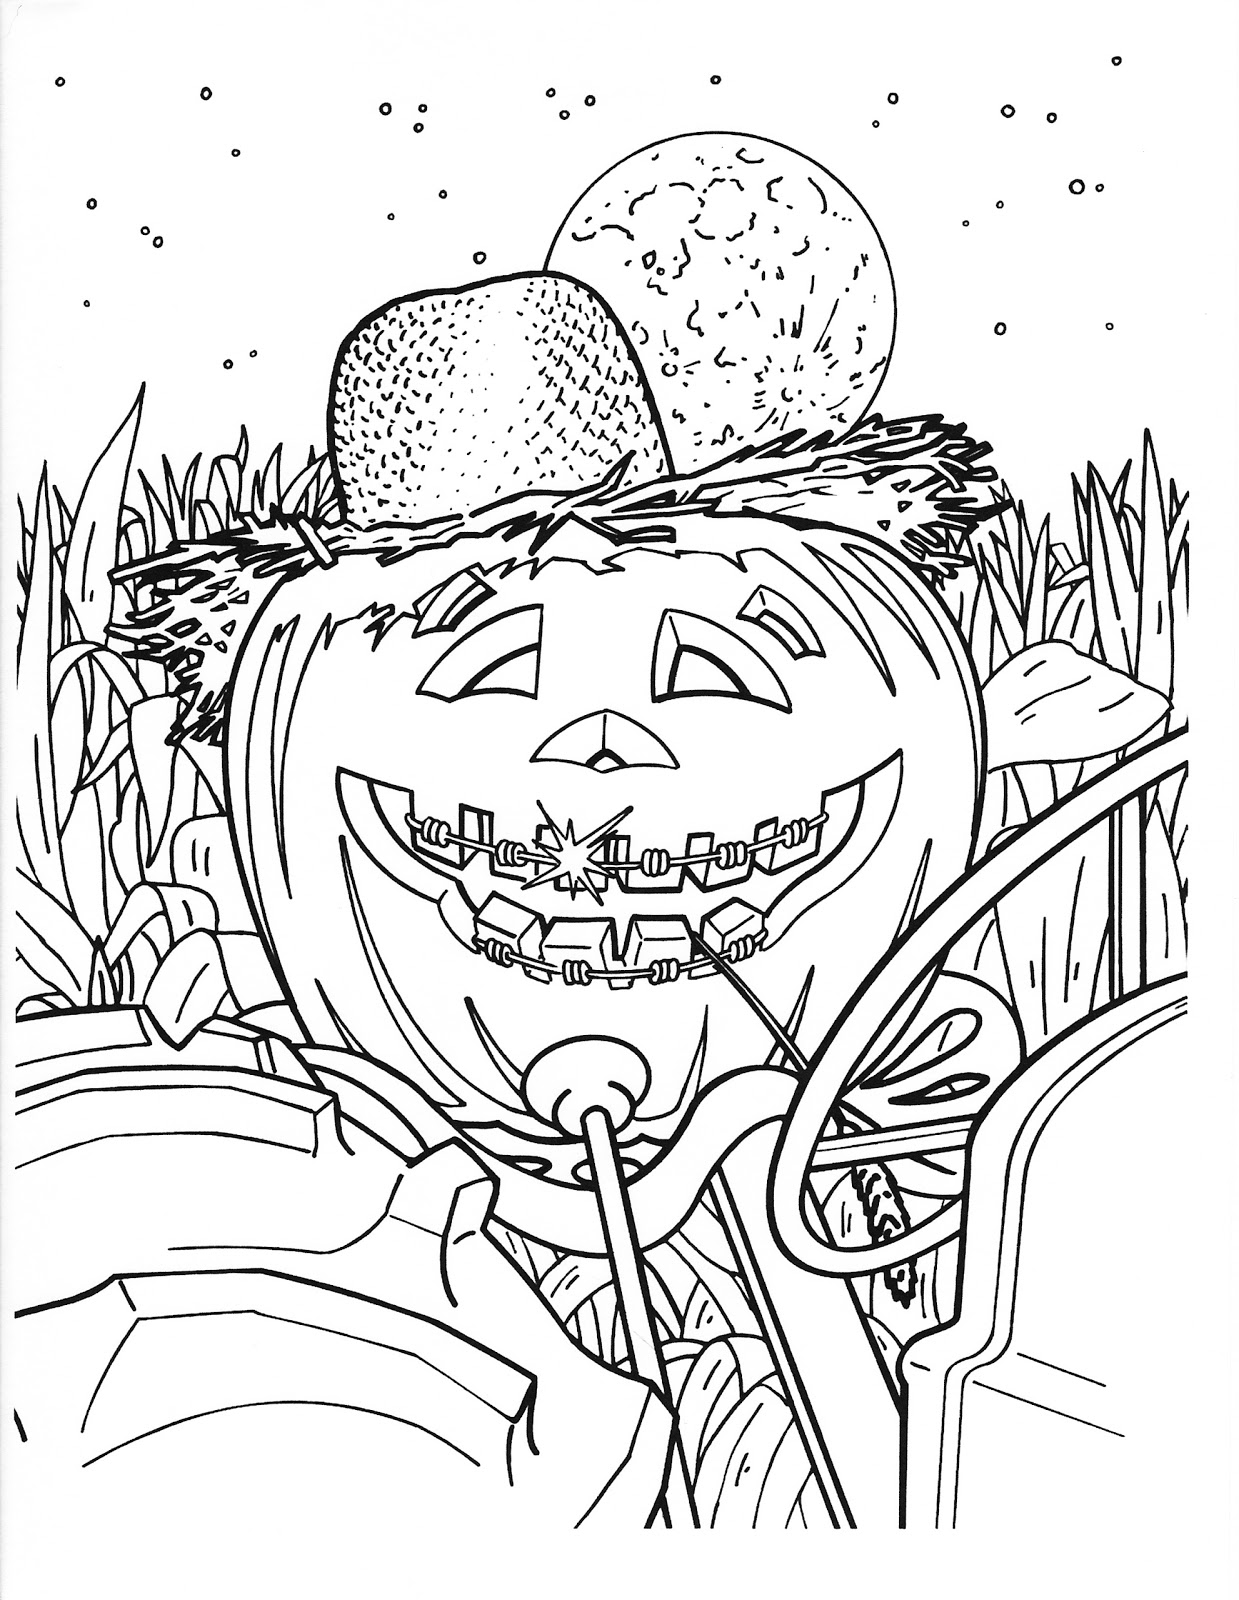 hard free halloween coloring pages - photo#25